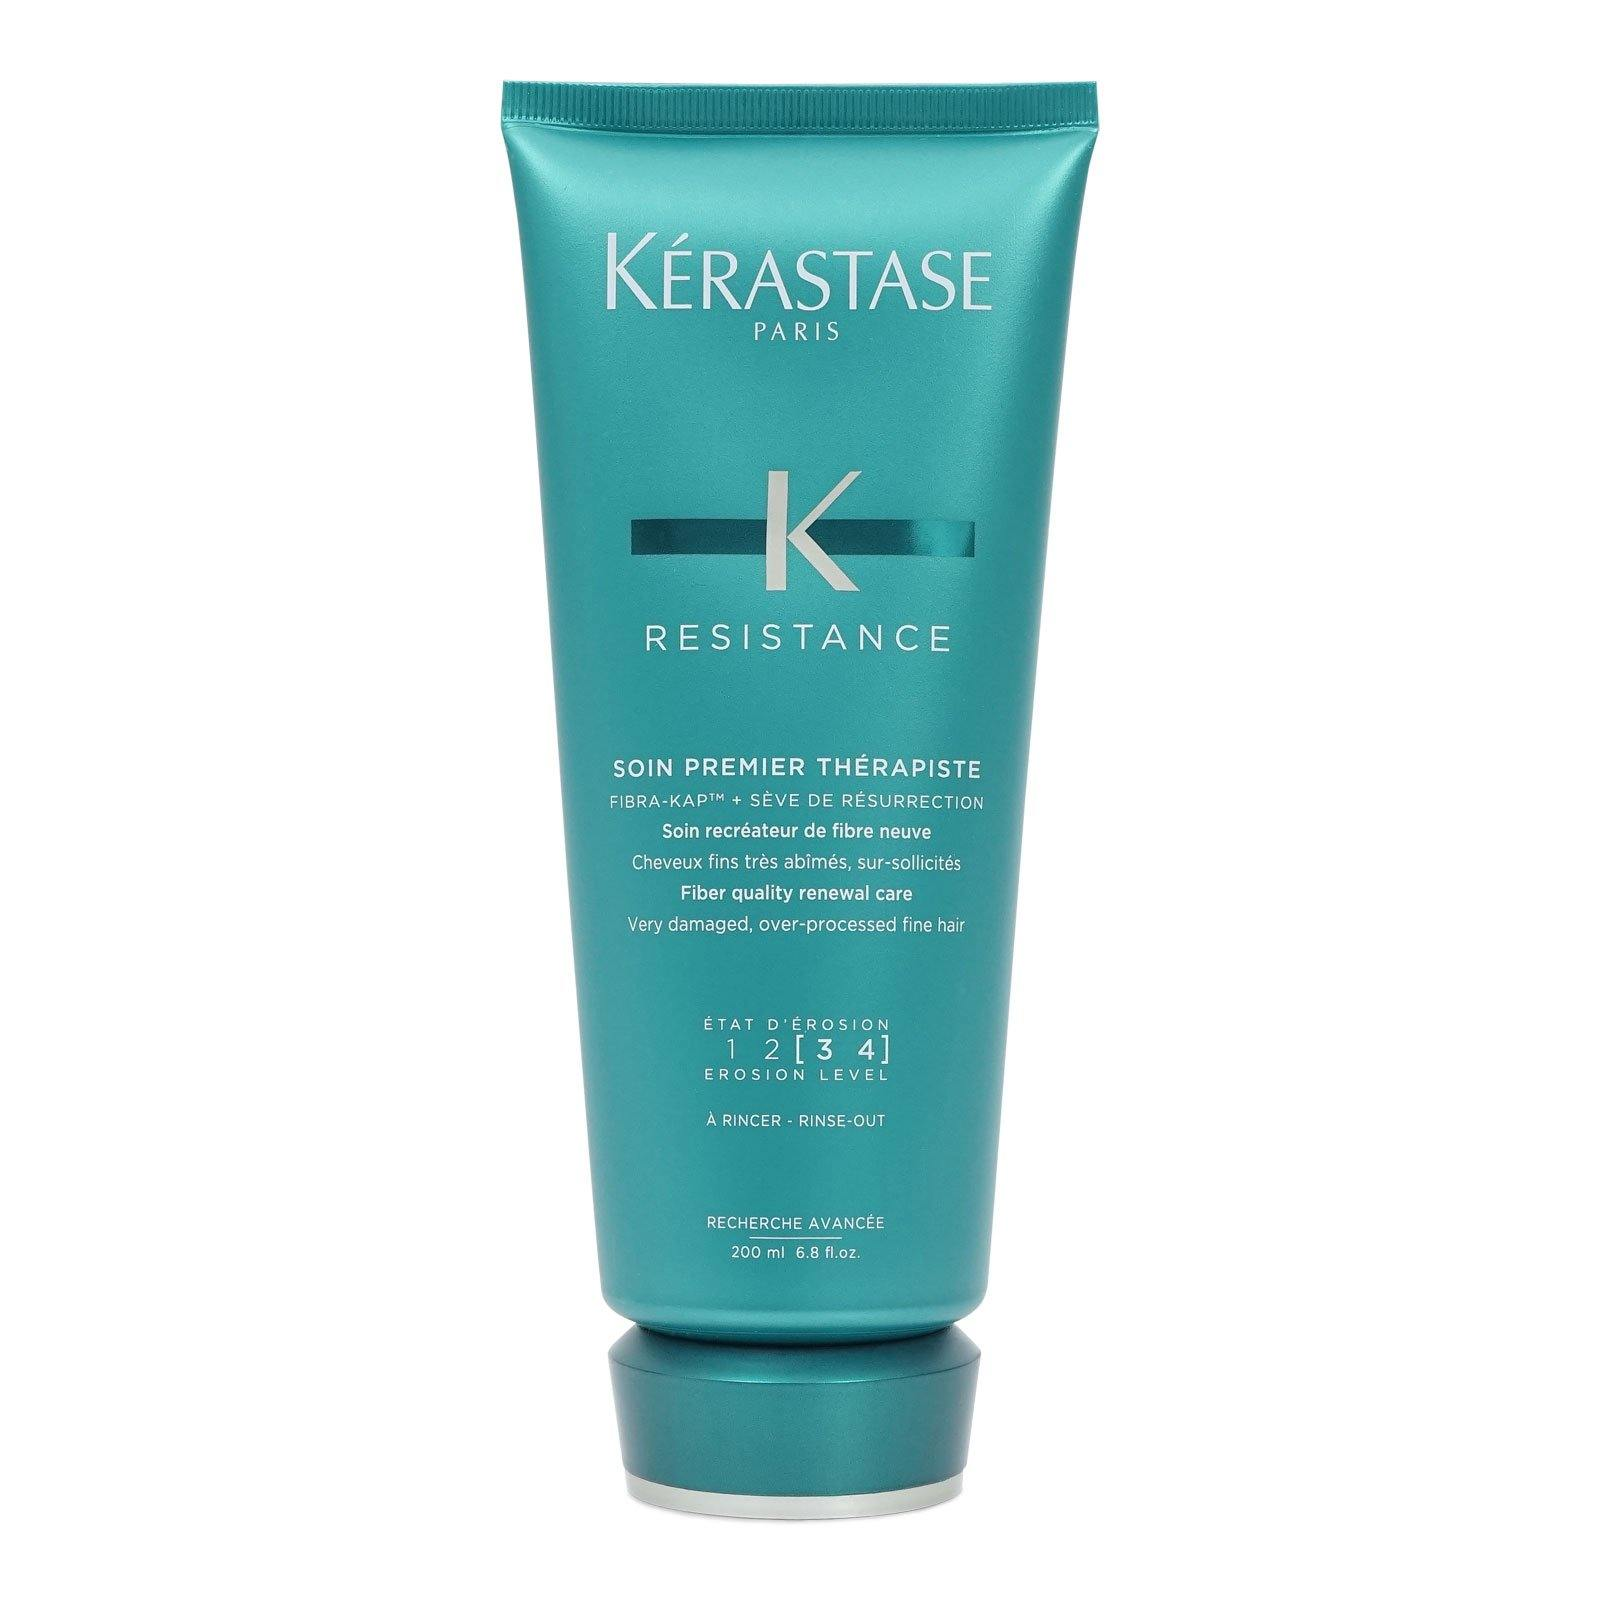 Kerastase Resistance Soin Premier Therapiste Conditioner 200ml/6.8 fl oz (3/cs)